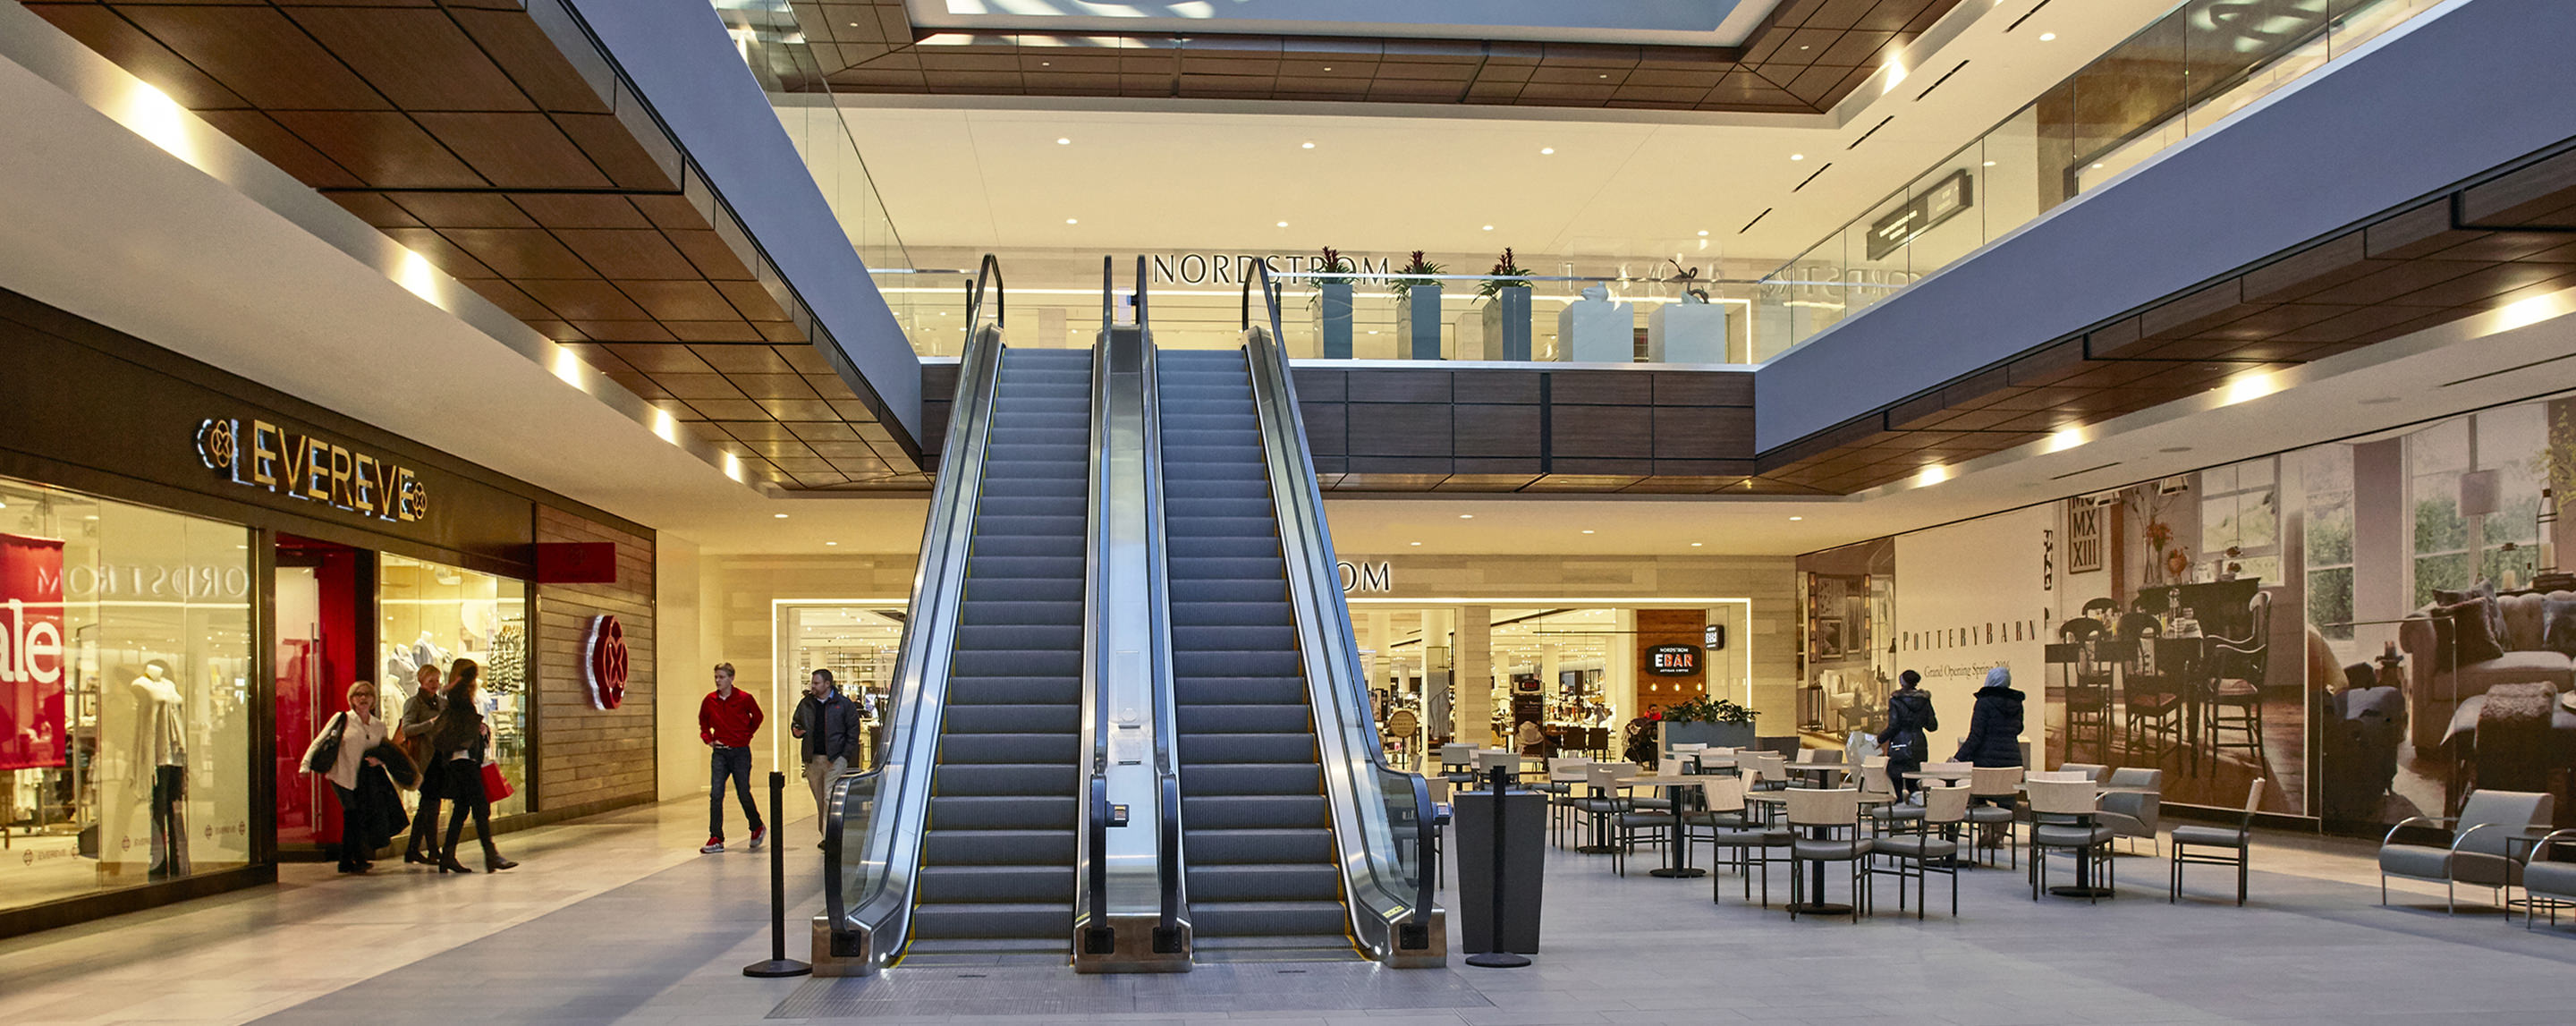 Shoppers walk by the escalators and the interior entrance to Nordstrom on the top level of Ridgedale Center.